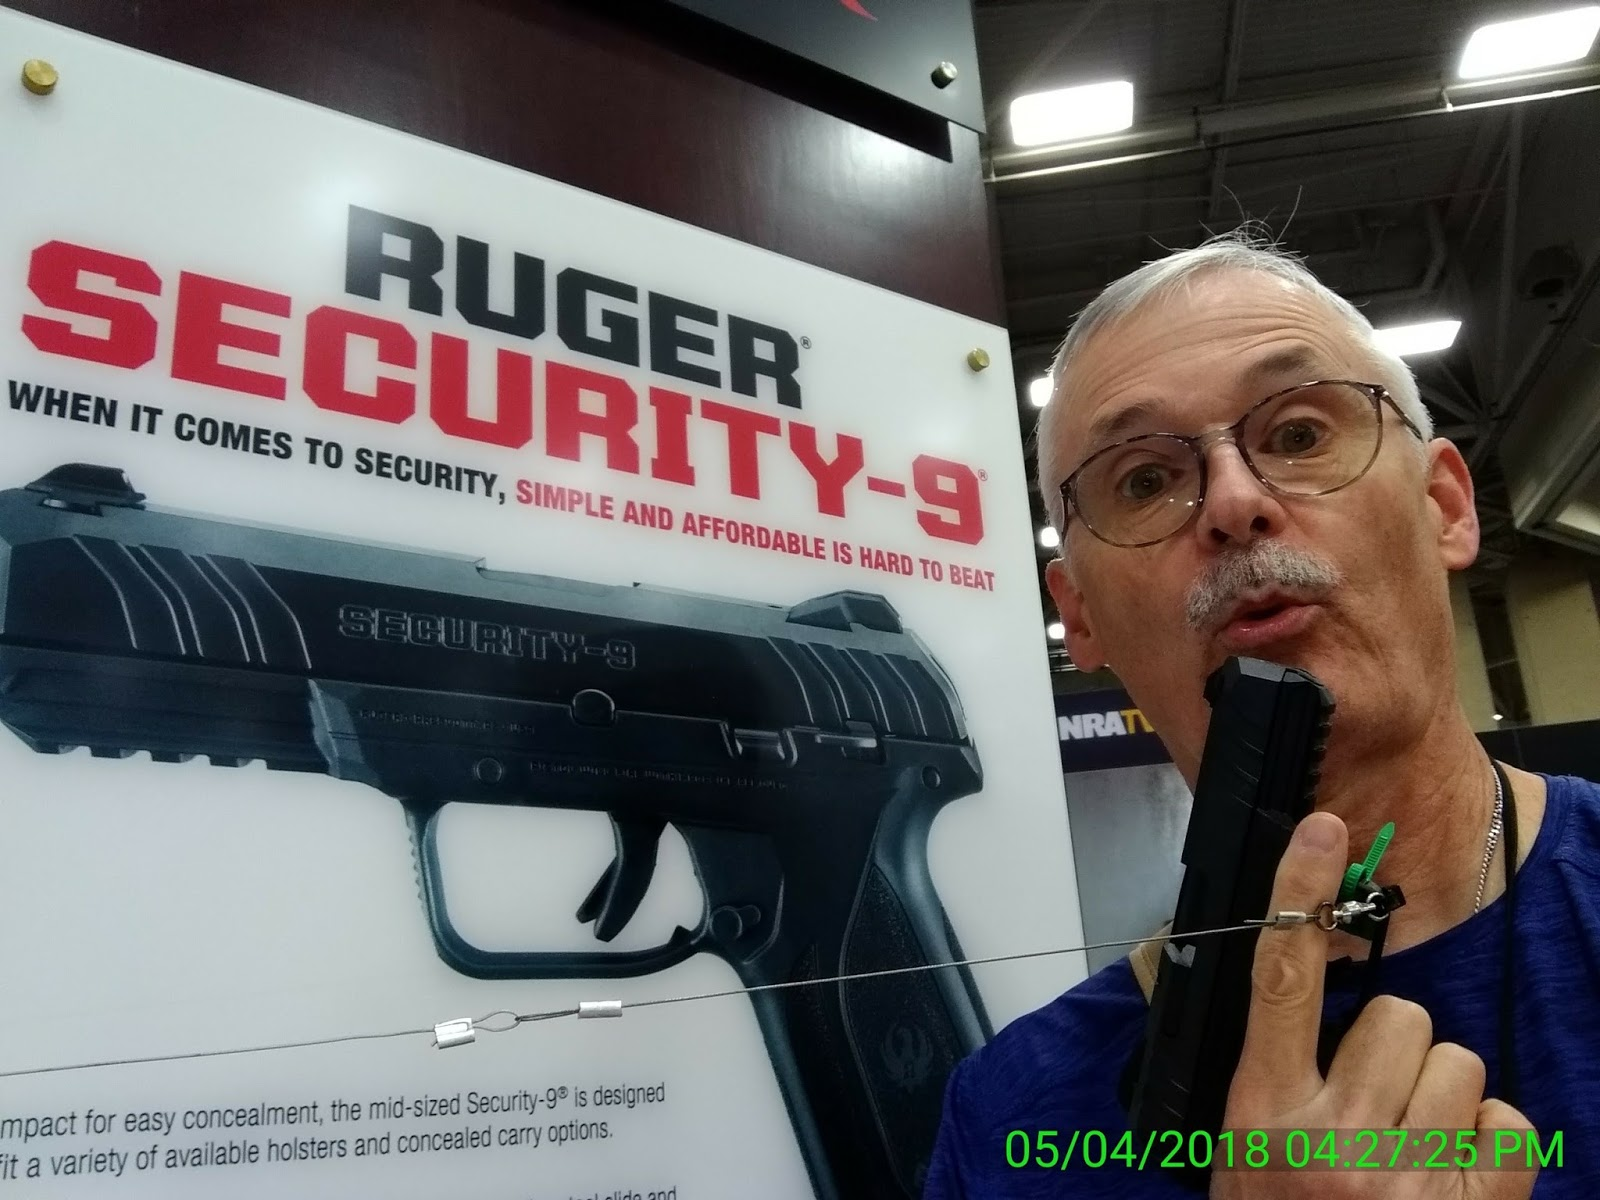 Good Hill Press: Ruger Security 9